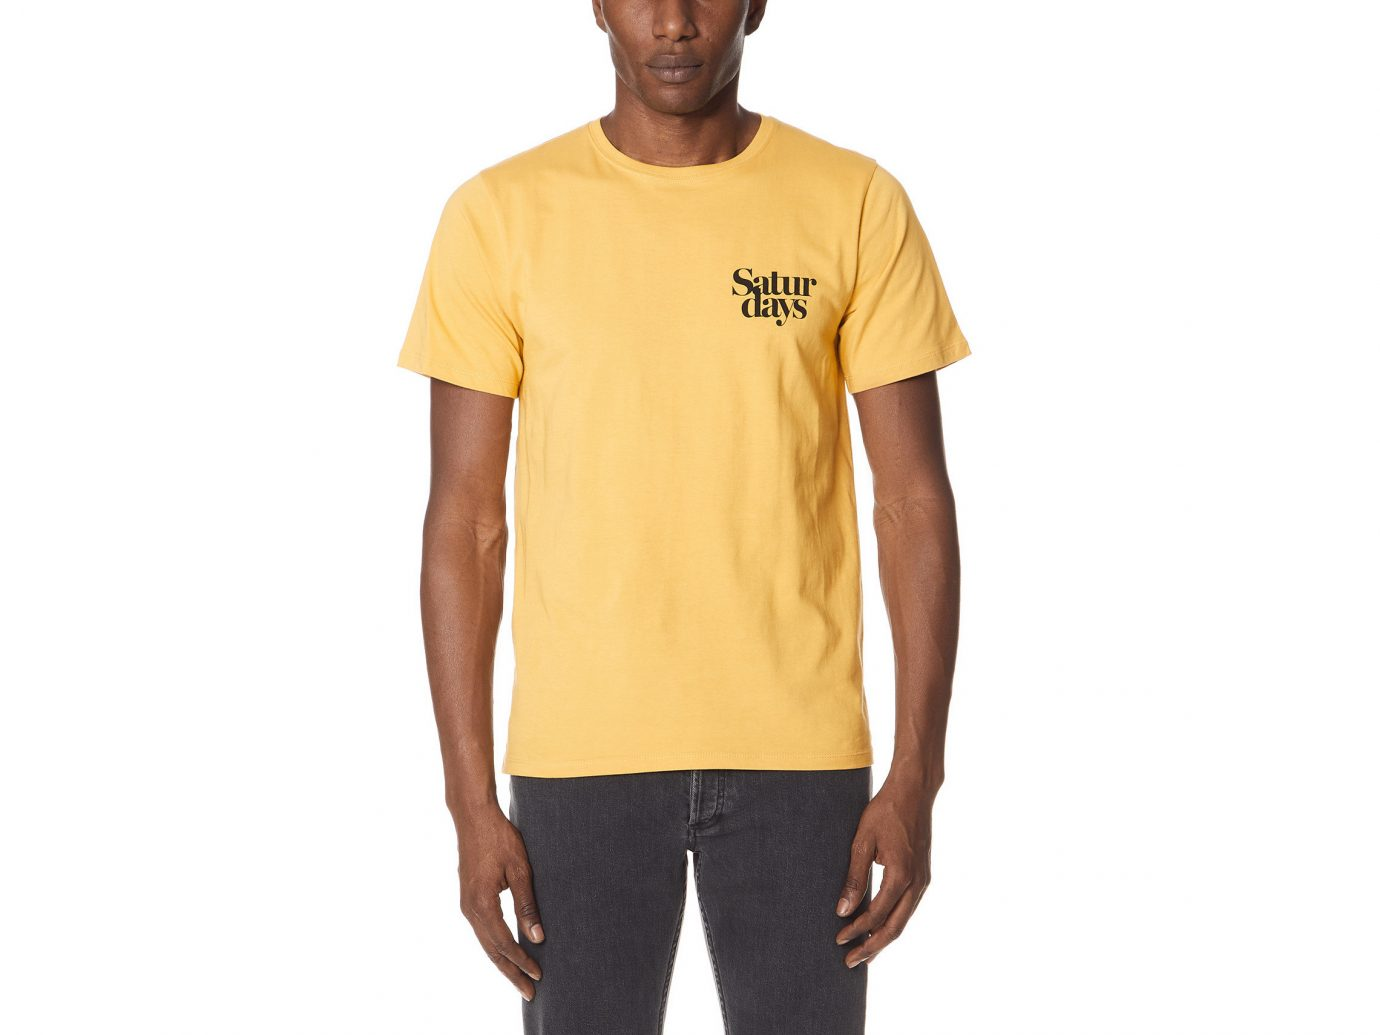 Spring Travel Style + Design Summer Travel Travel Shop man person t shirt yellow standing sleeve product shoulder neck long sleeved t shirt active shirt posing male